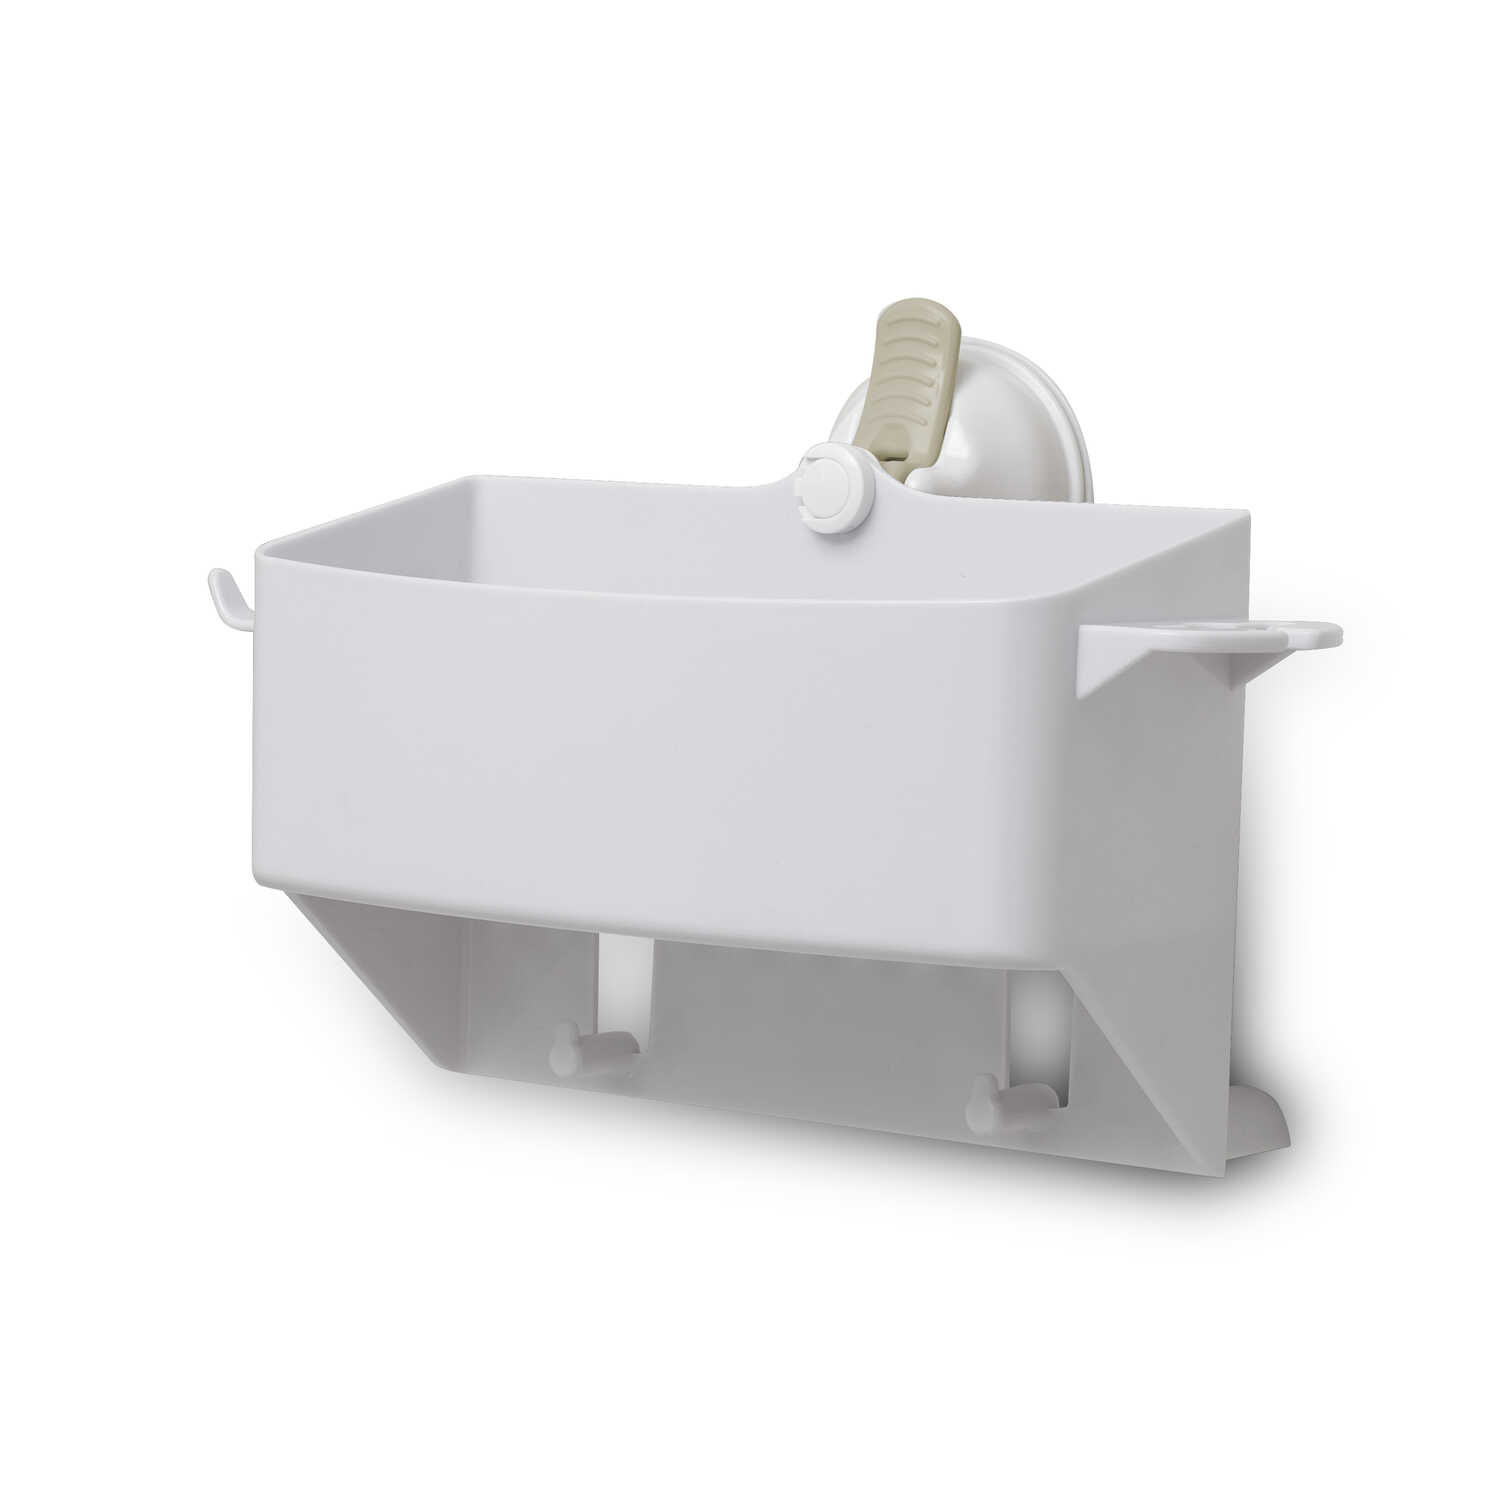 Safe-Er-Grip  Caddy/Razor/Toothbrush Holder  5 in. W x 10 in. L x 5.5 in. H Bright  White  Plastic